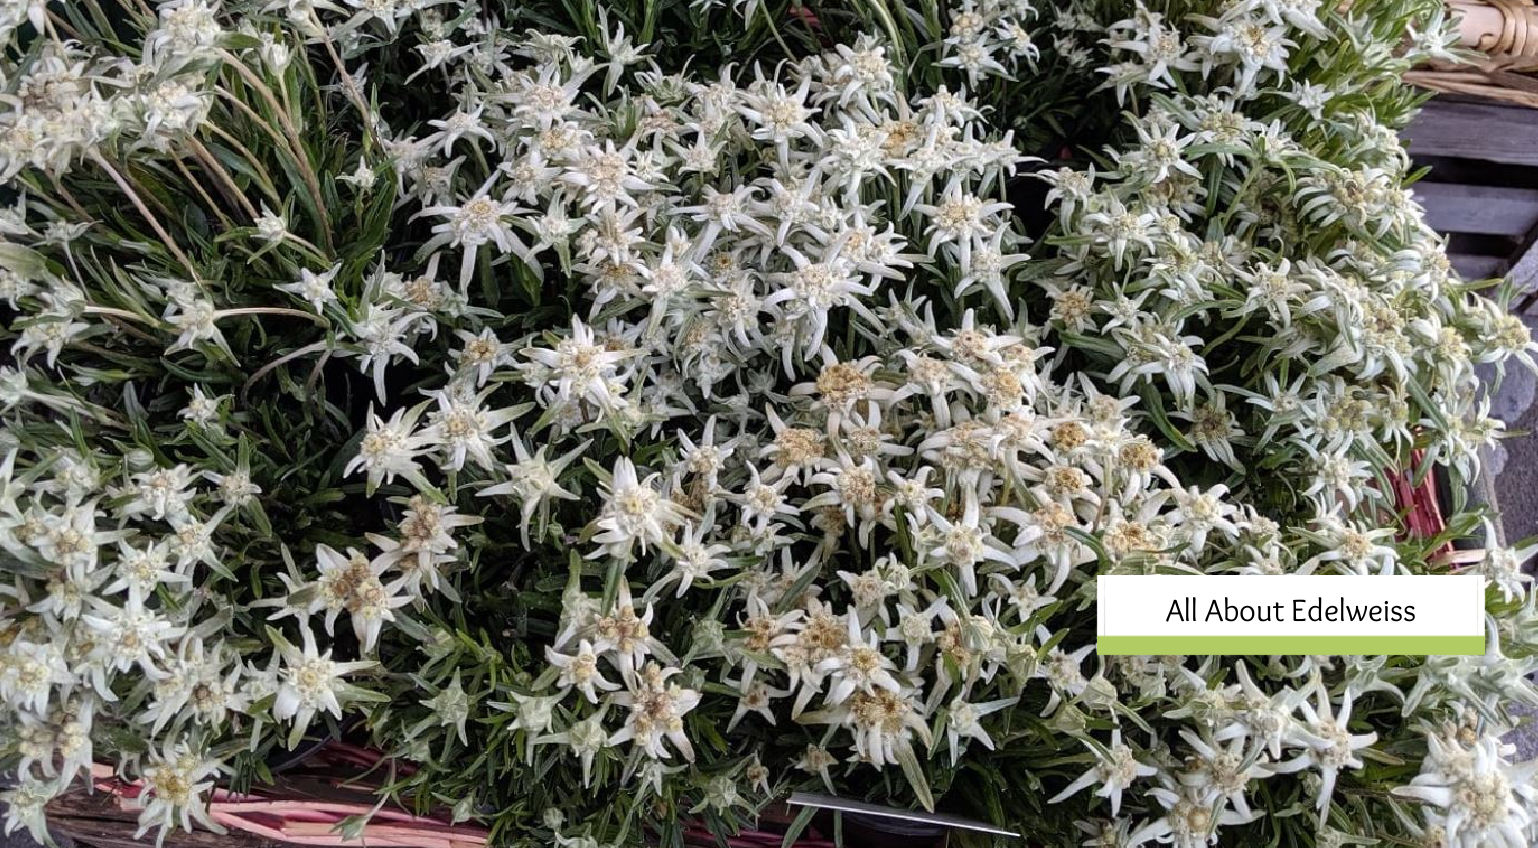 What is Edelweiss? All about this Legendary Flower